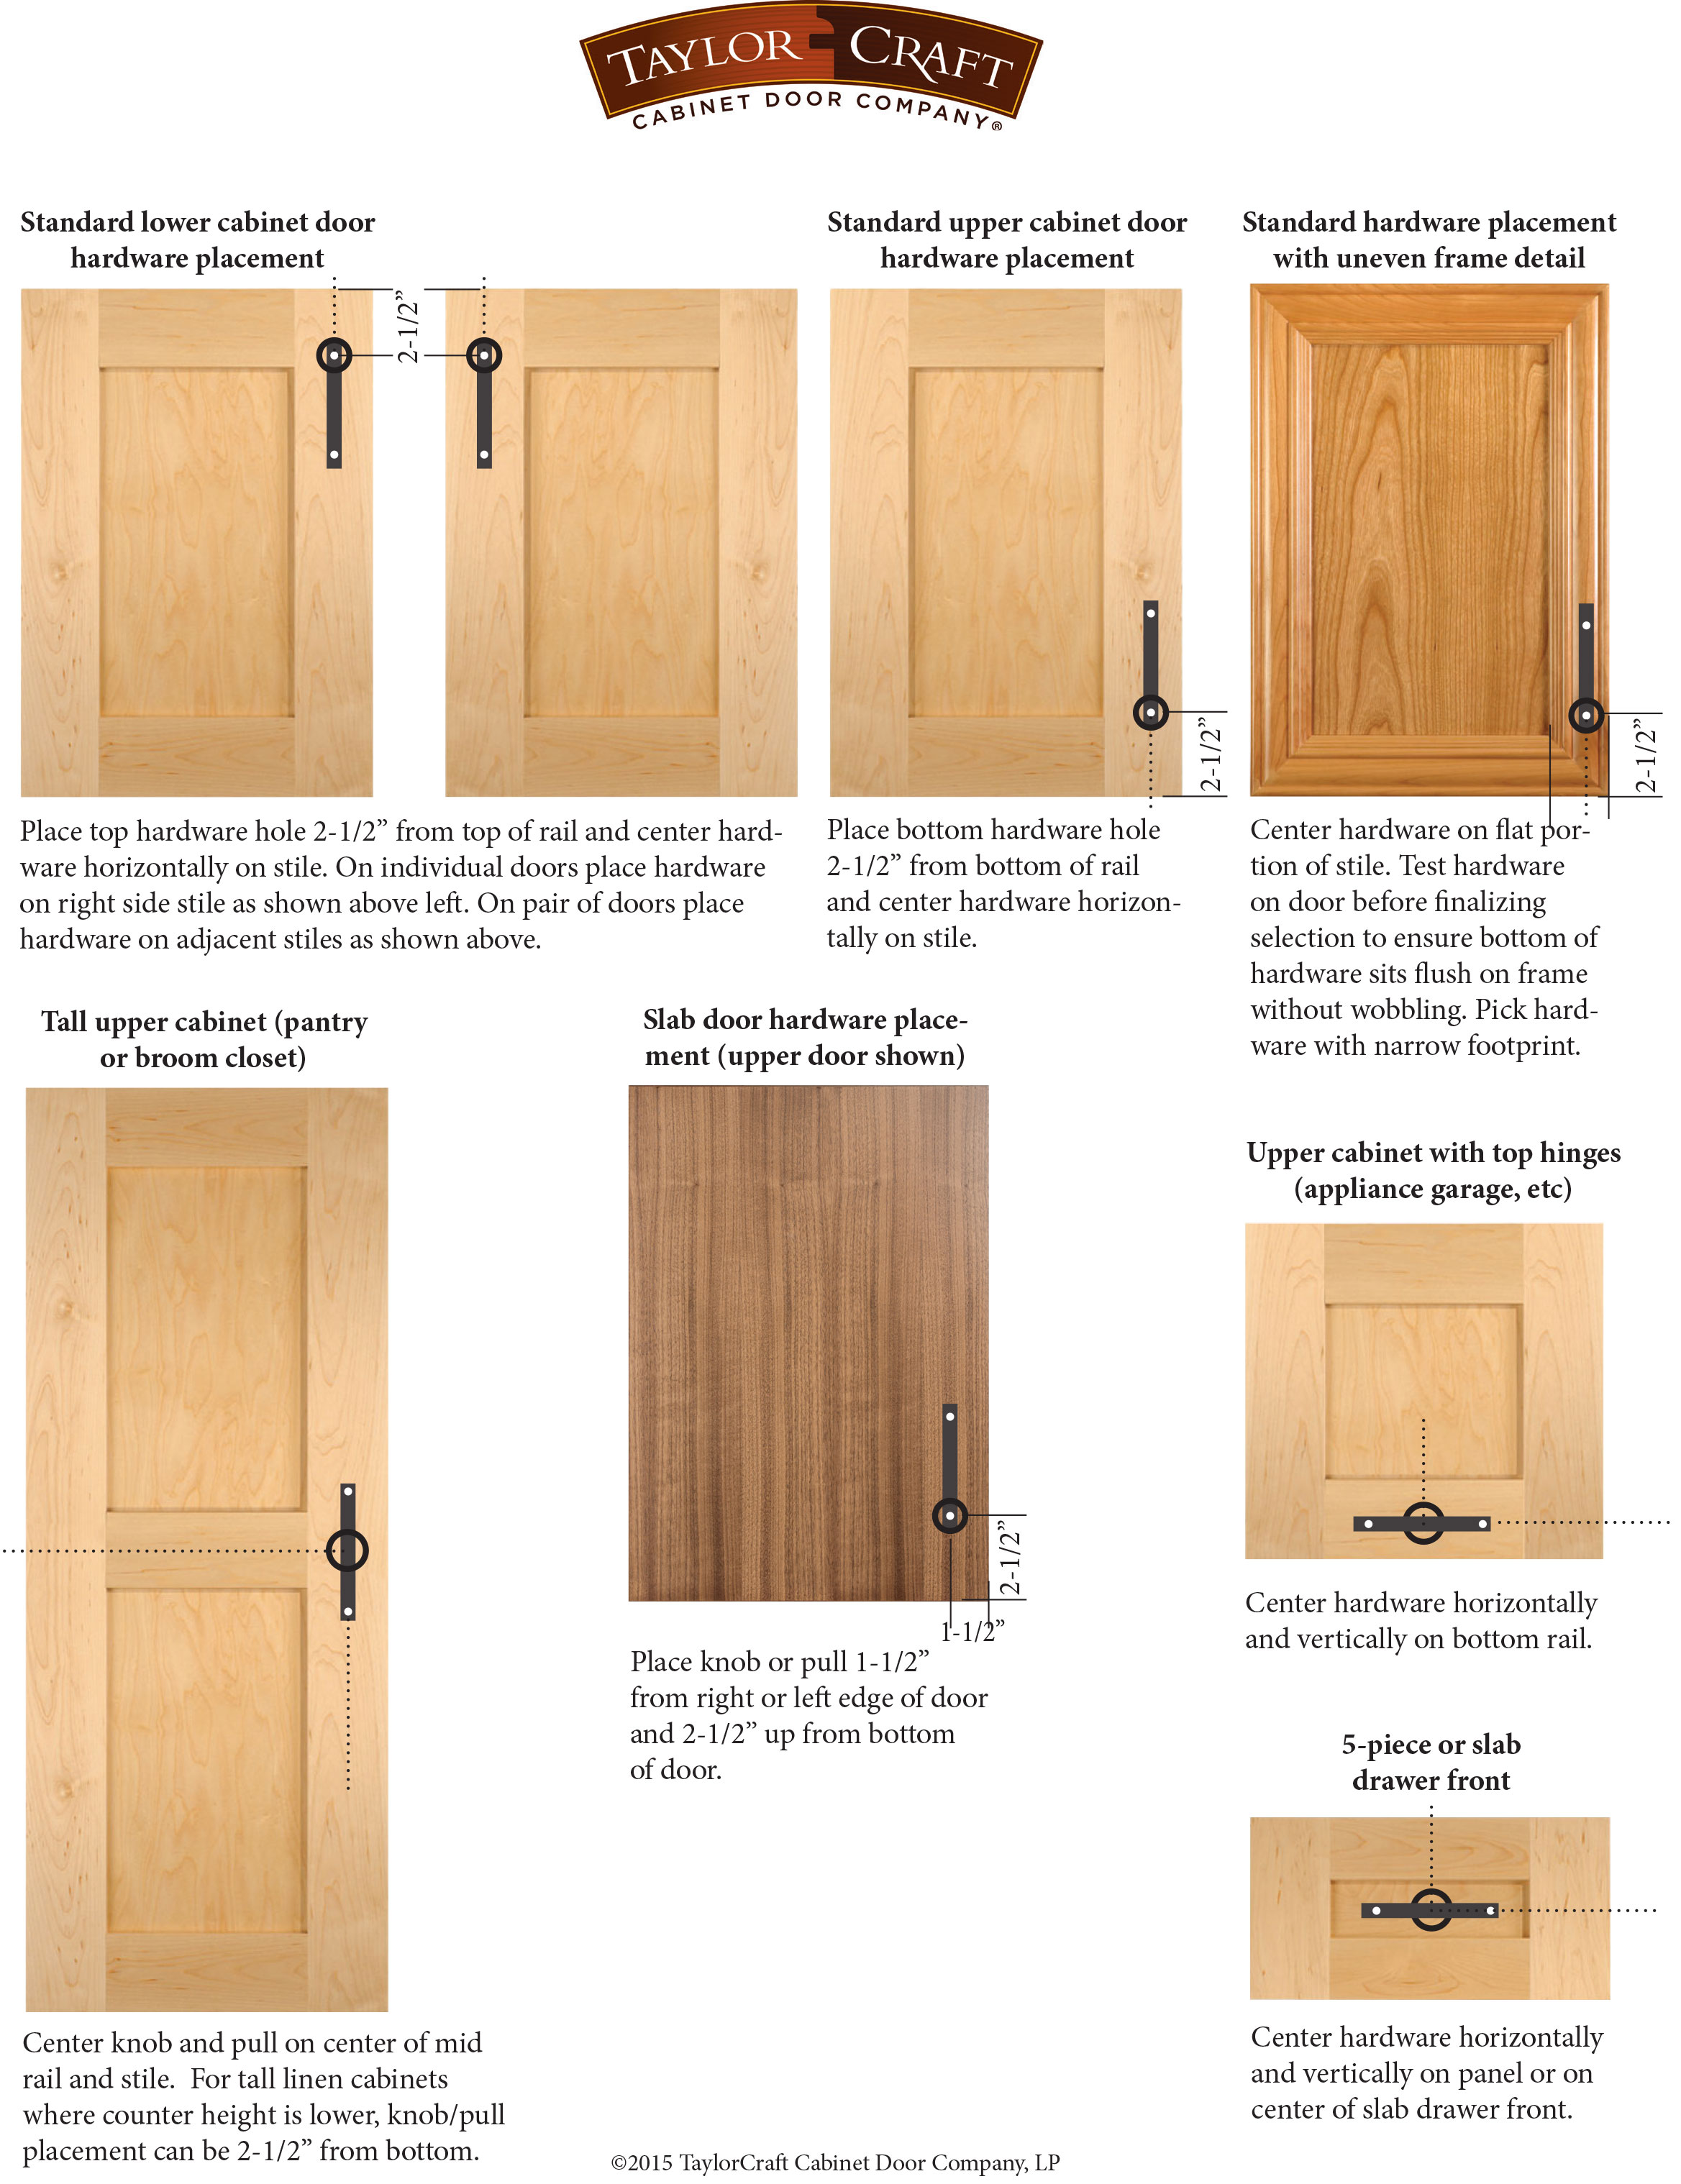 Kitchen Cabinet Doors Not Flush - Cabinet door hardware placement guidelines taylorcraft cabinet door company